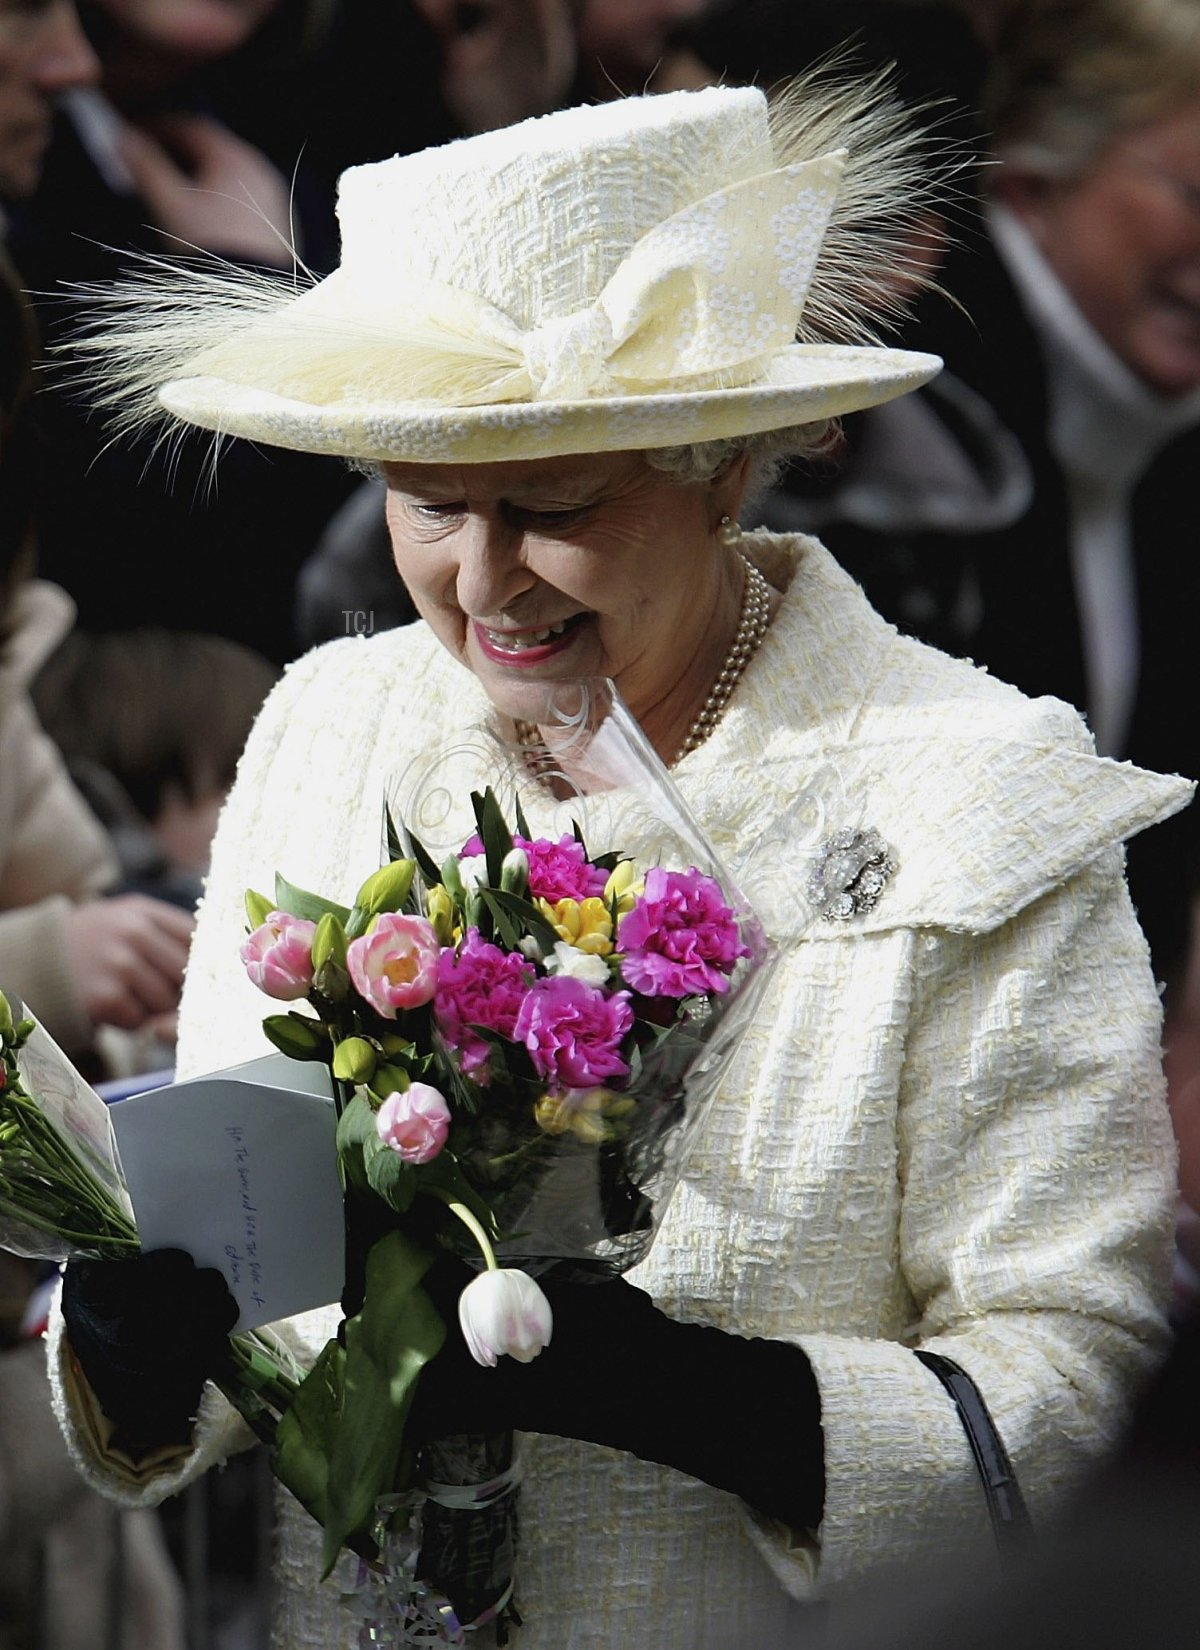 HRH Queen Elizabeth II meets the public as she walks through Guilford High Street on April 13, 2006 in Guilford, England. The Queen and The Duke of Edinburgh were present at the Maundy Service in Guildford Cathedral where she distributed the Royal Maundy to the congregation during the Service